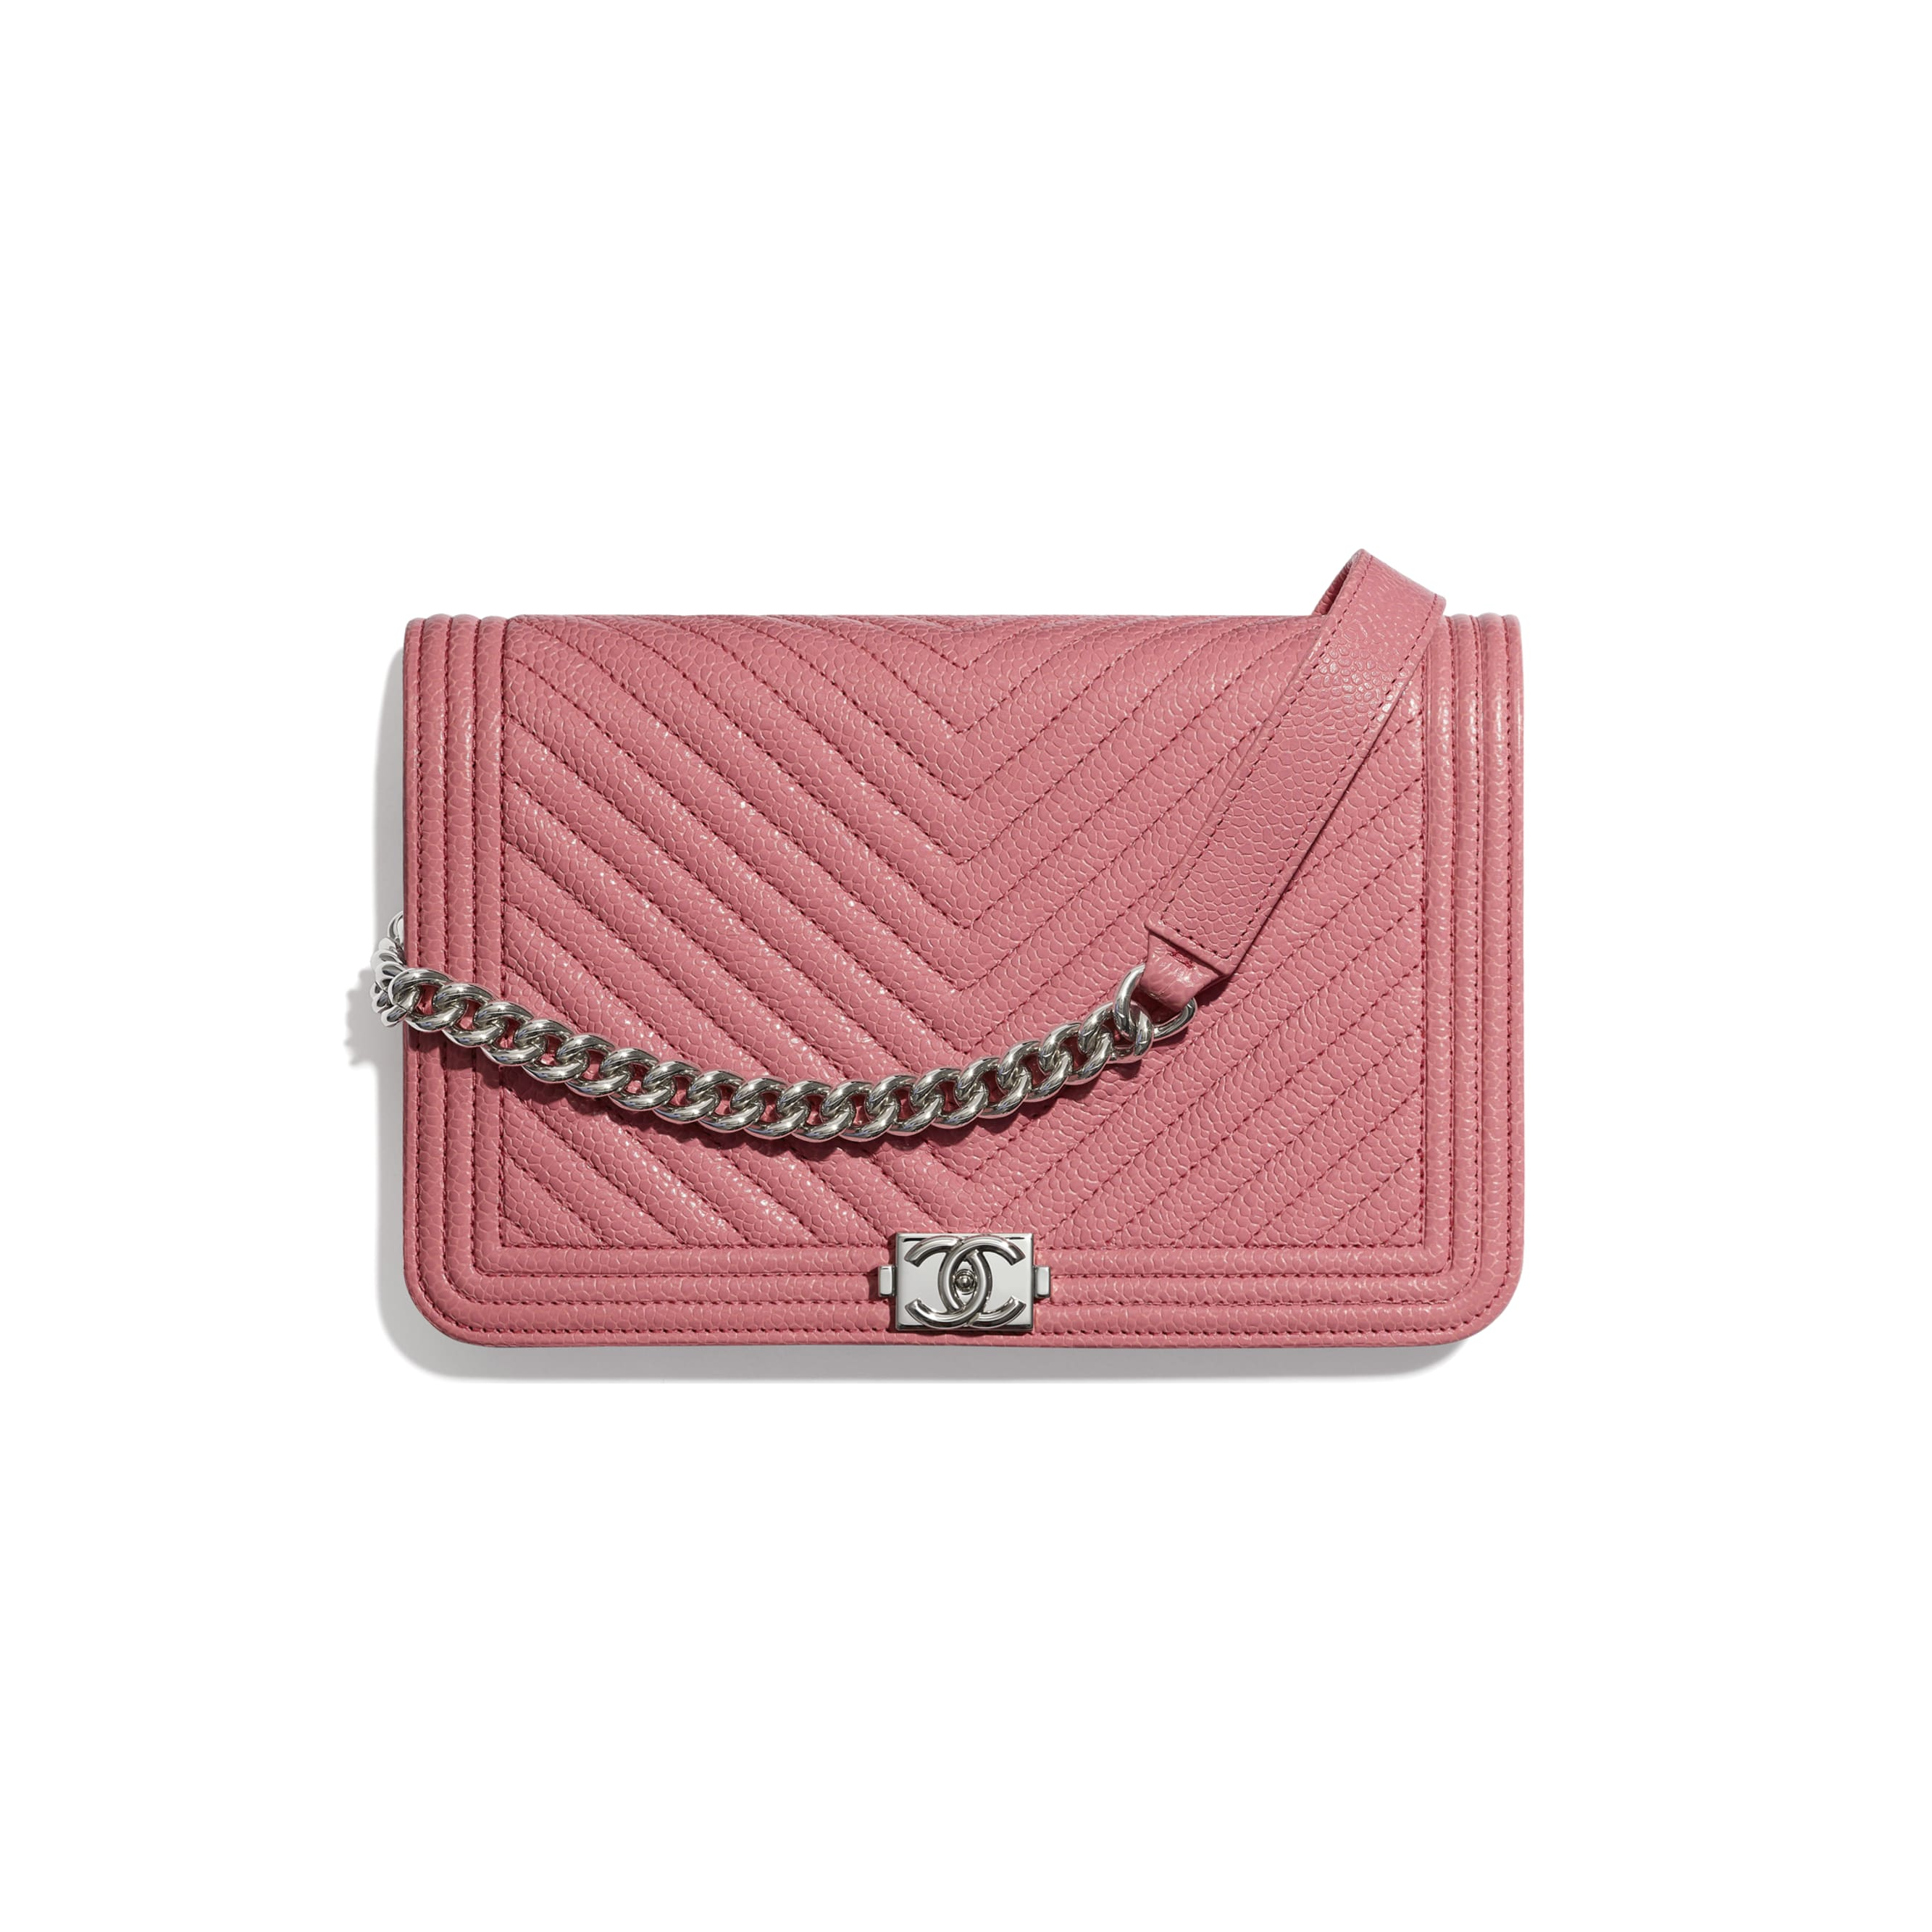 BOY CHANEL Wallet On Chain - Pink - Shiny Grained Calfskin & Silver-Tone Metal - Default view - see standard sized version